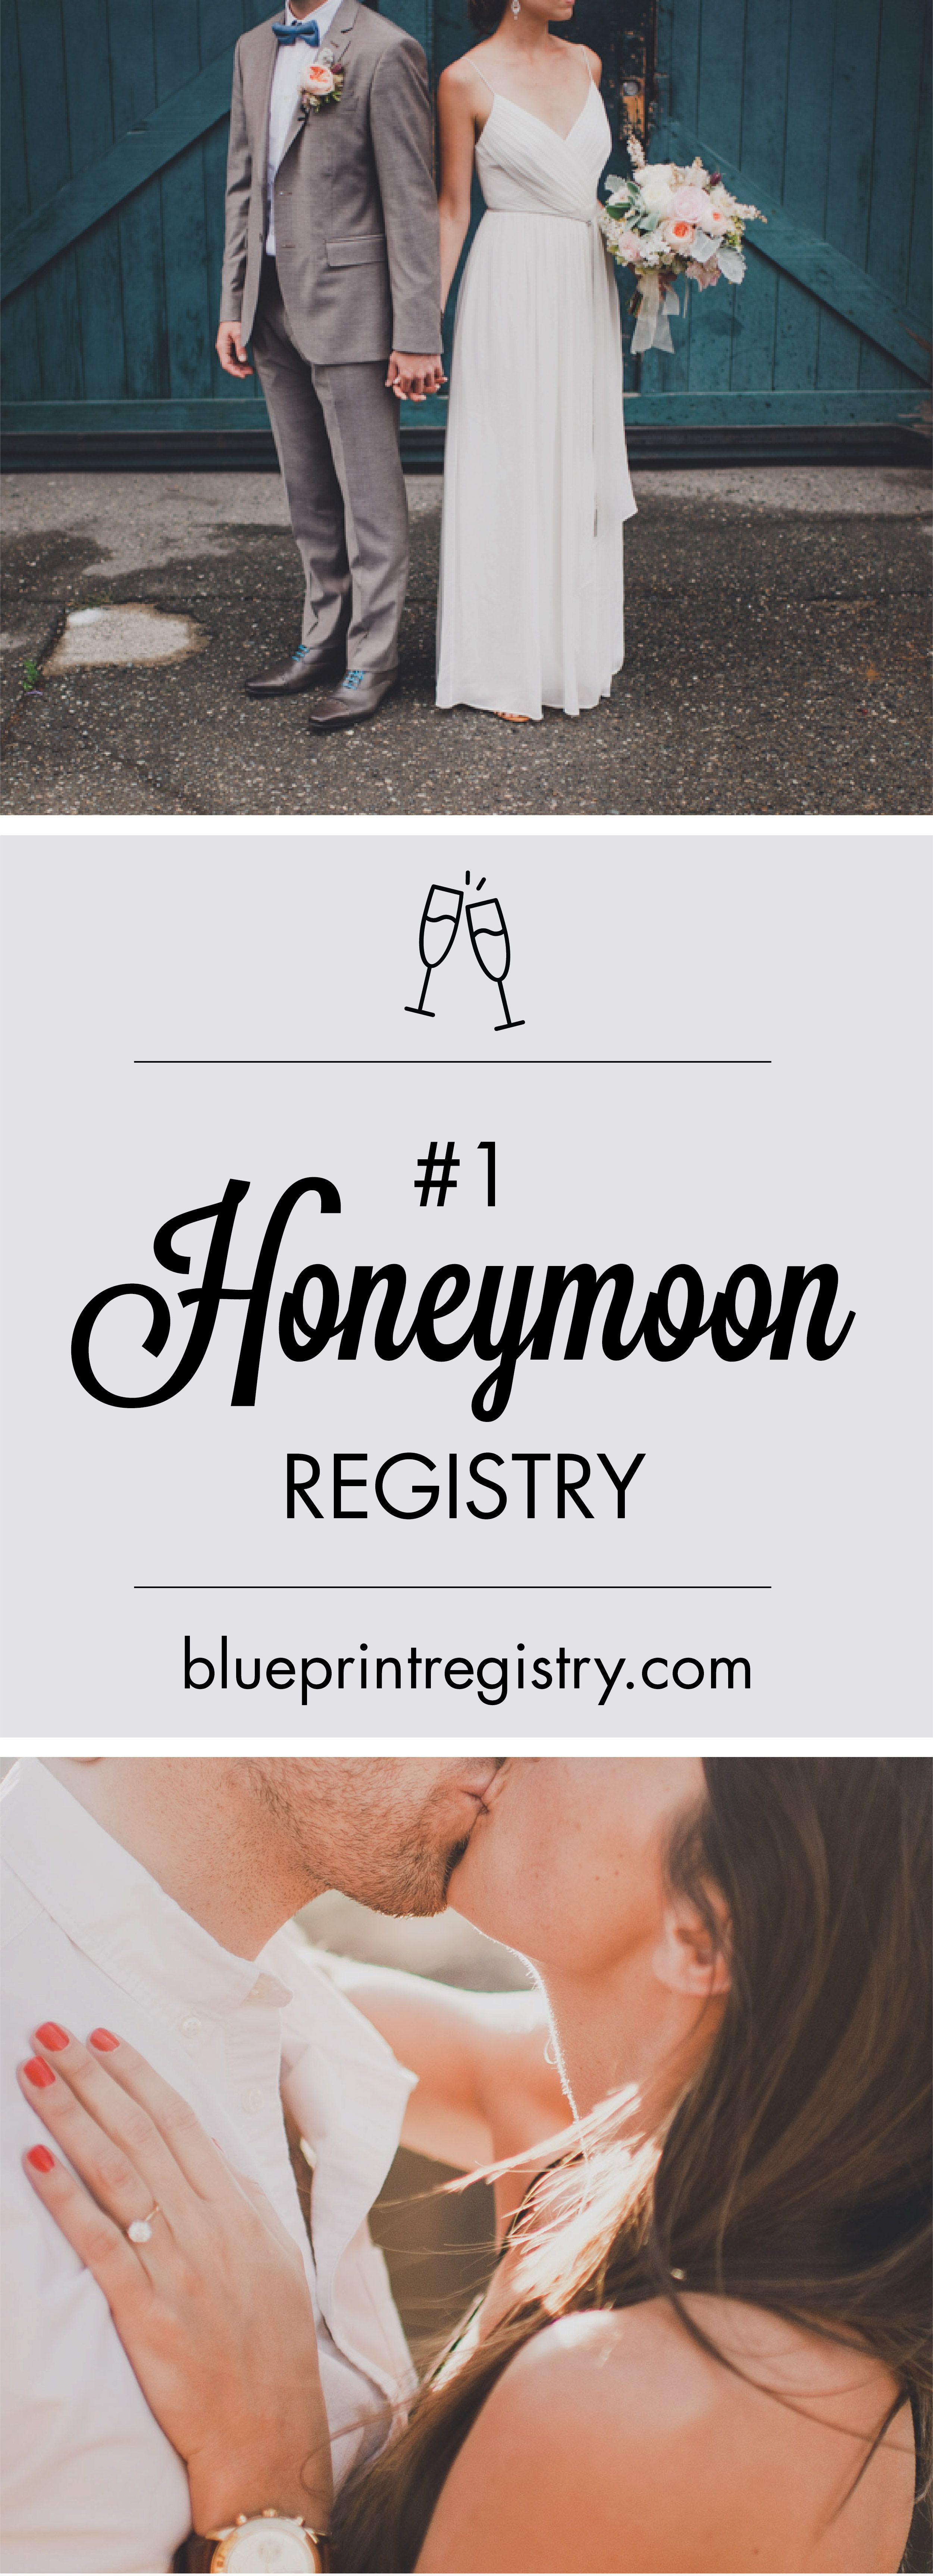 Start your honeymoon fund with blueprint registry blueprint start your honeymoon fund with blueprint registry malvernweather Choice Image